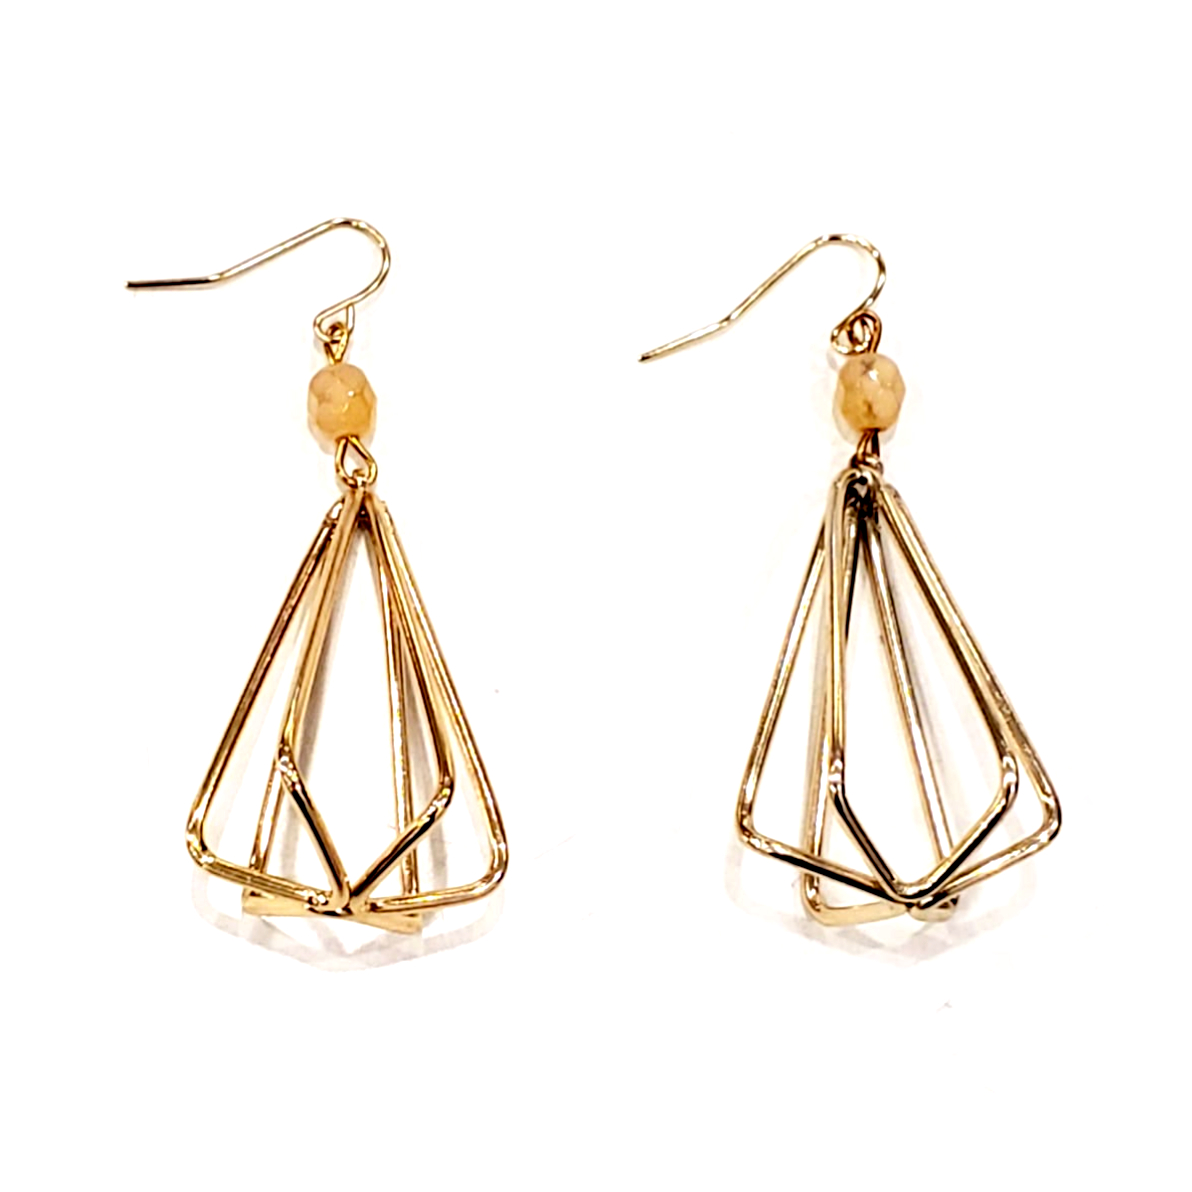 Whisk Cage Earrings